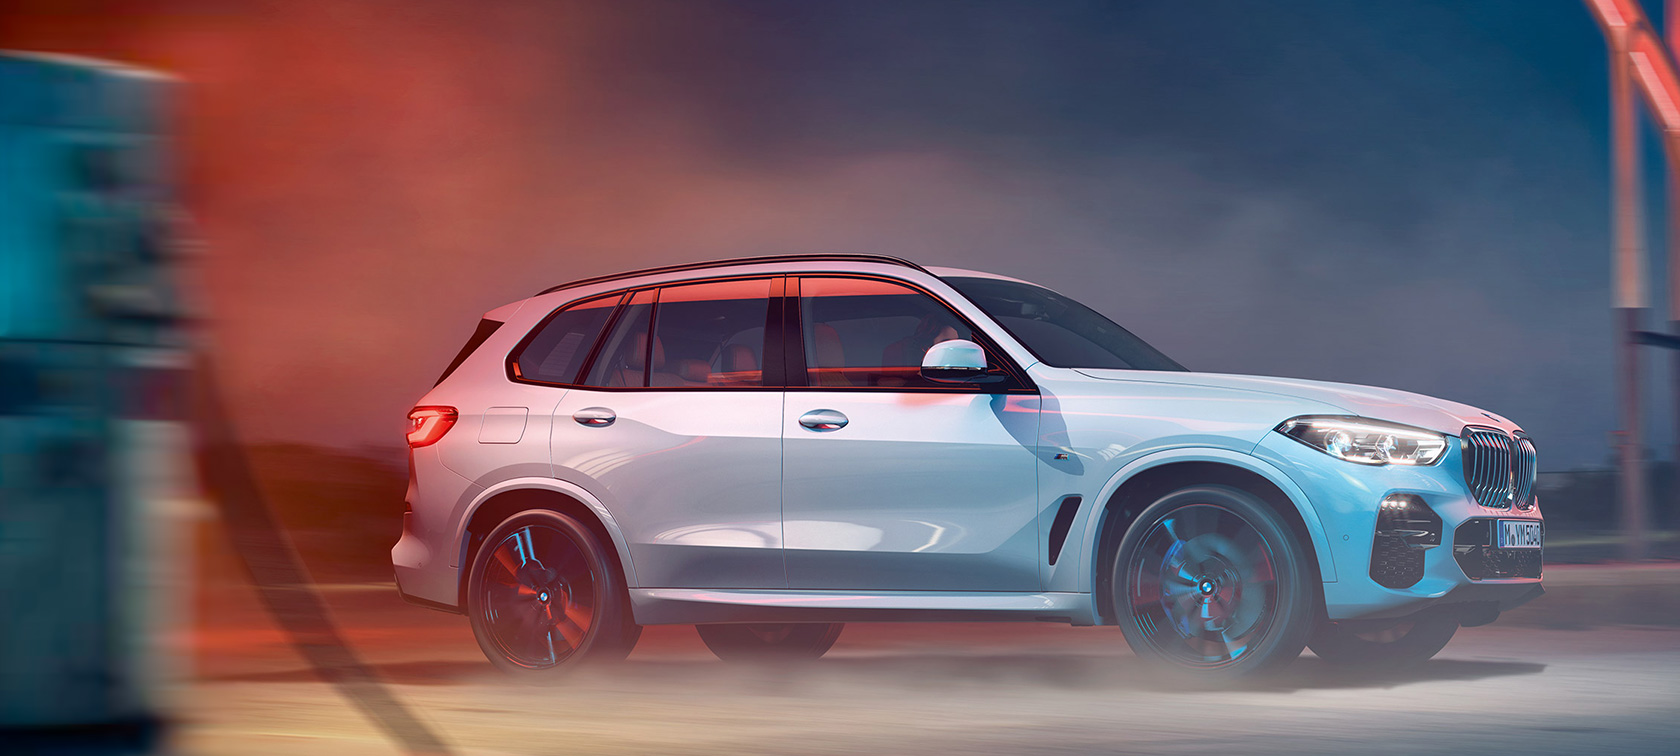 THE X5